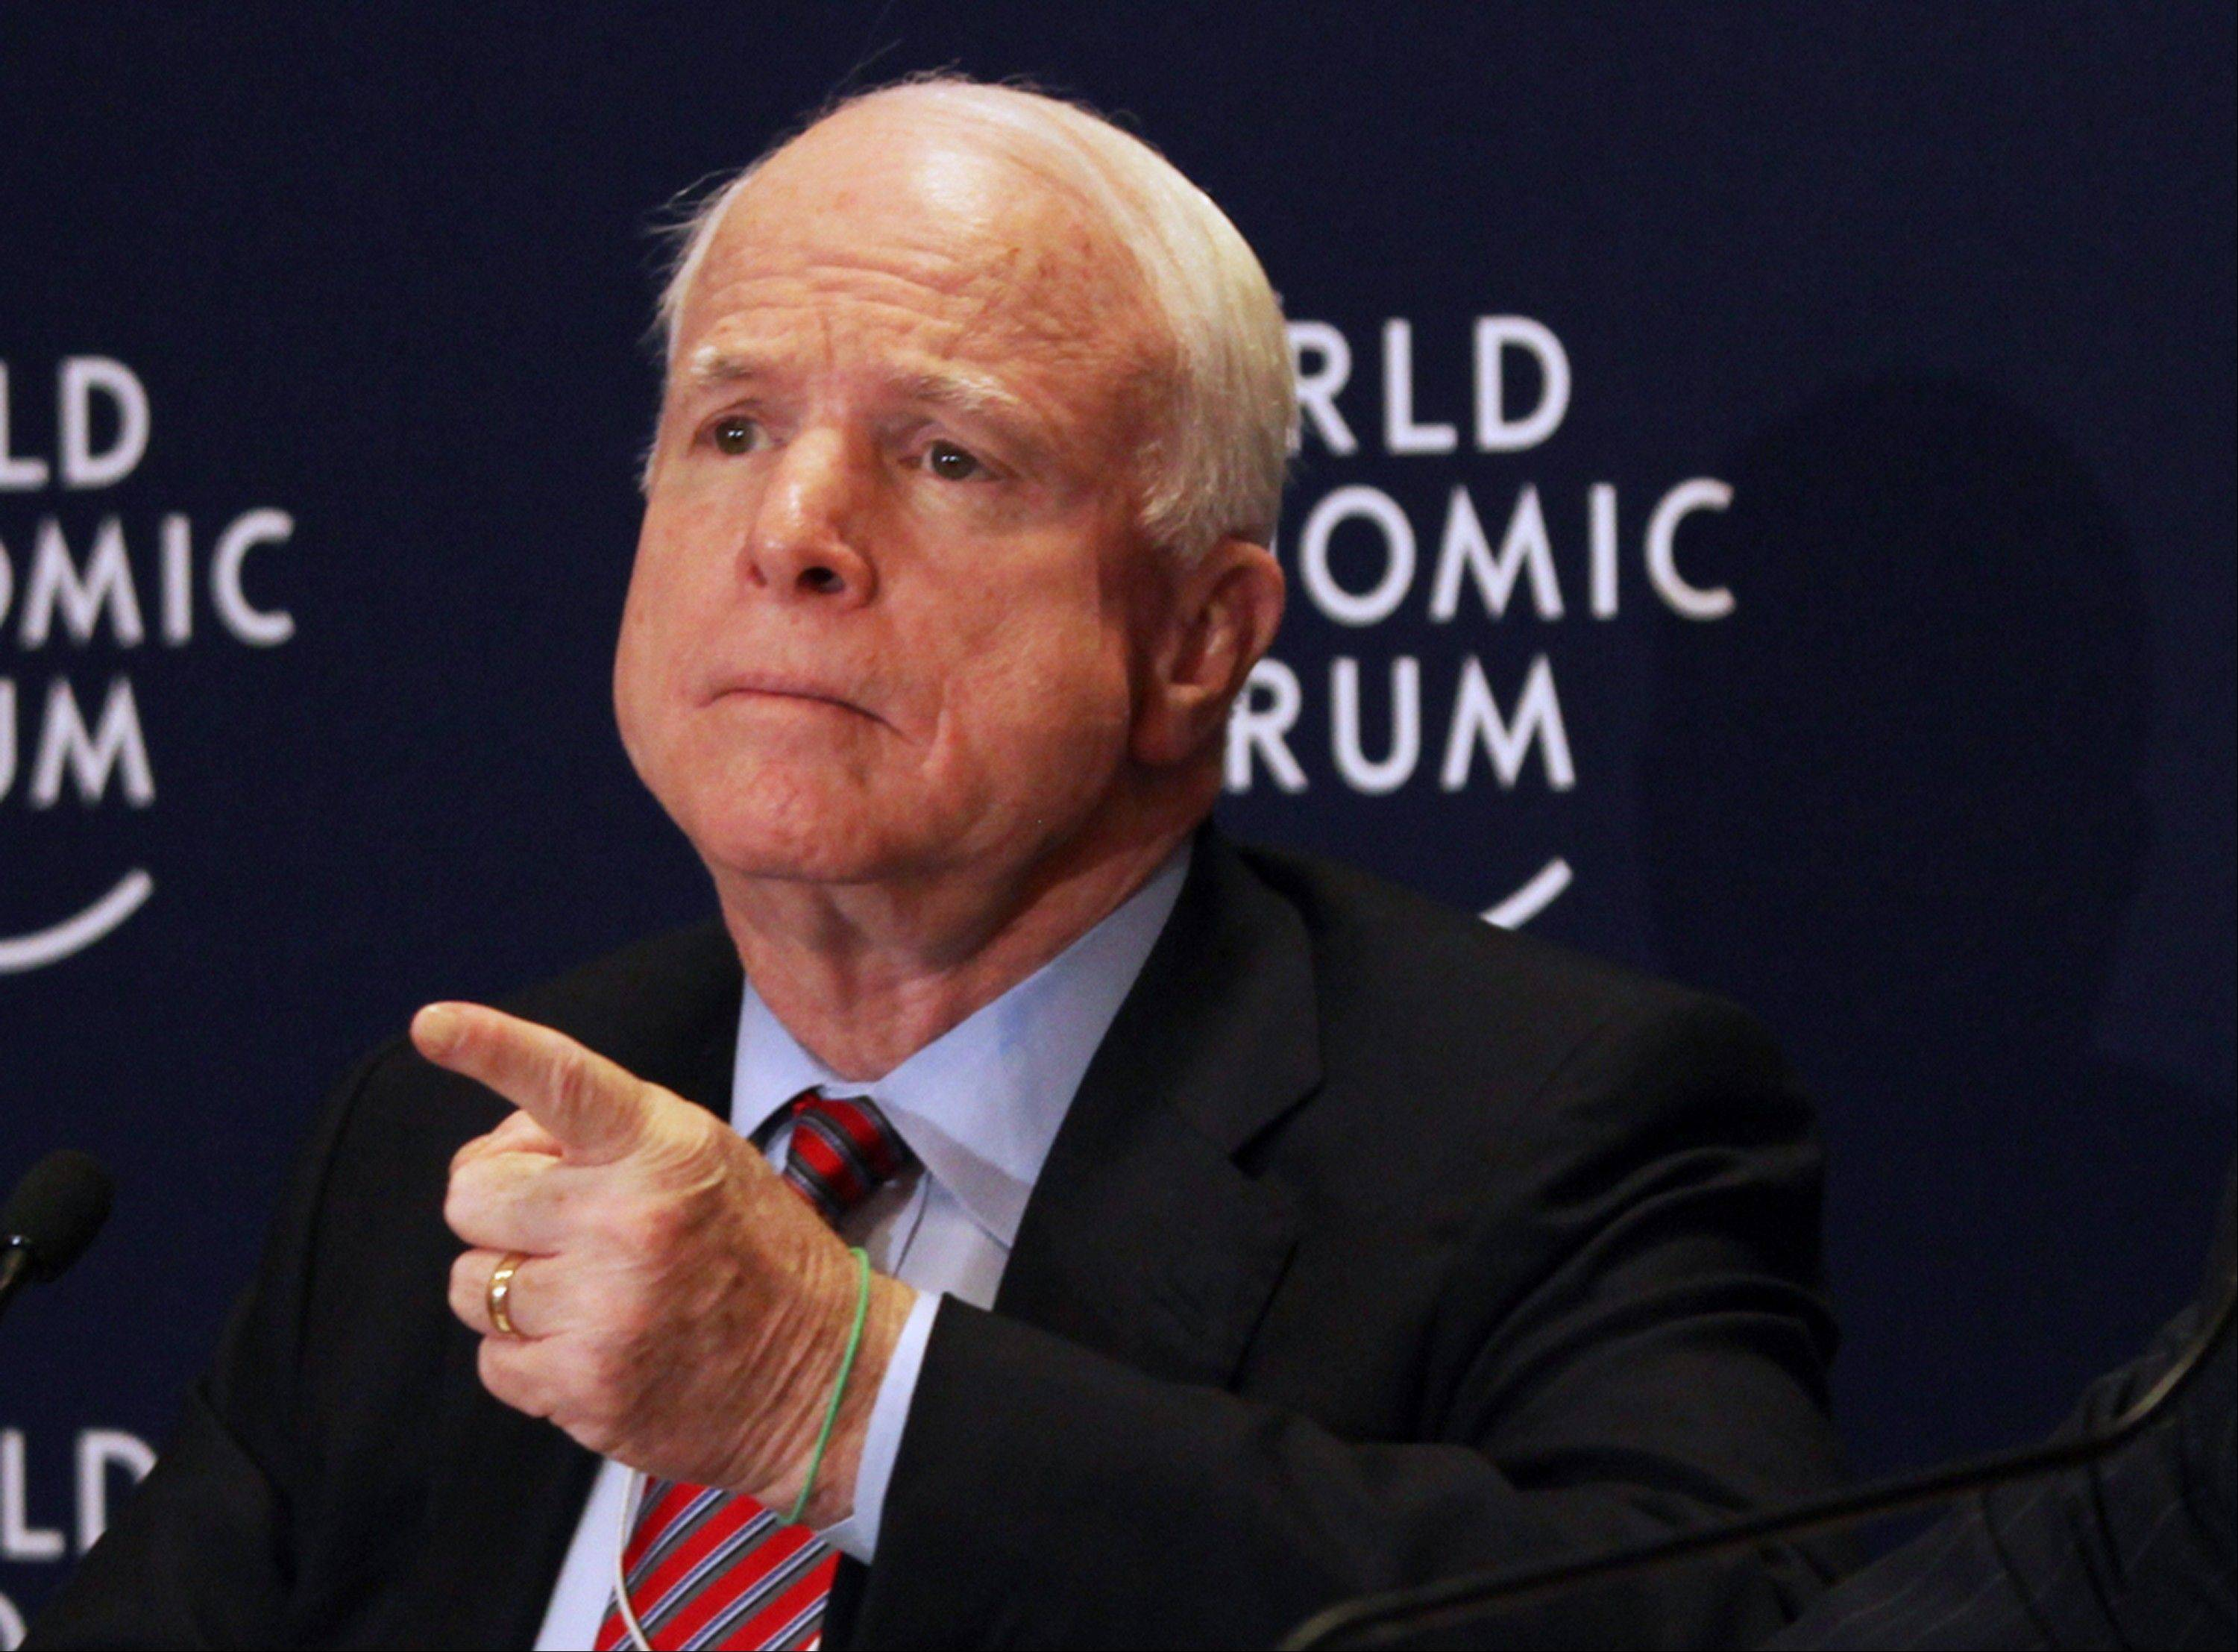 GOP Sen. John McCain of Arizona speaks at a news conference at the World Economic Forum, in Southern Shuneh, southeast of Amman, Jordan. McCain said Friday, the day after he returned from an unannounced trip to Syria, that Syrian rebels battling the forces of President Bashar Assad need ammunition and heavy weapons to counter the regime's tanks and aircraft.